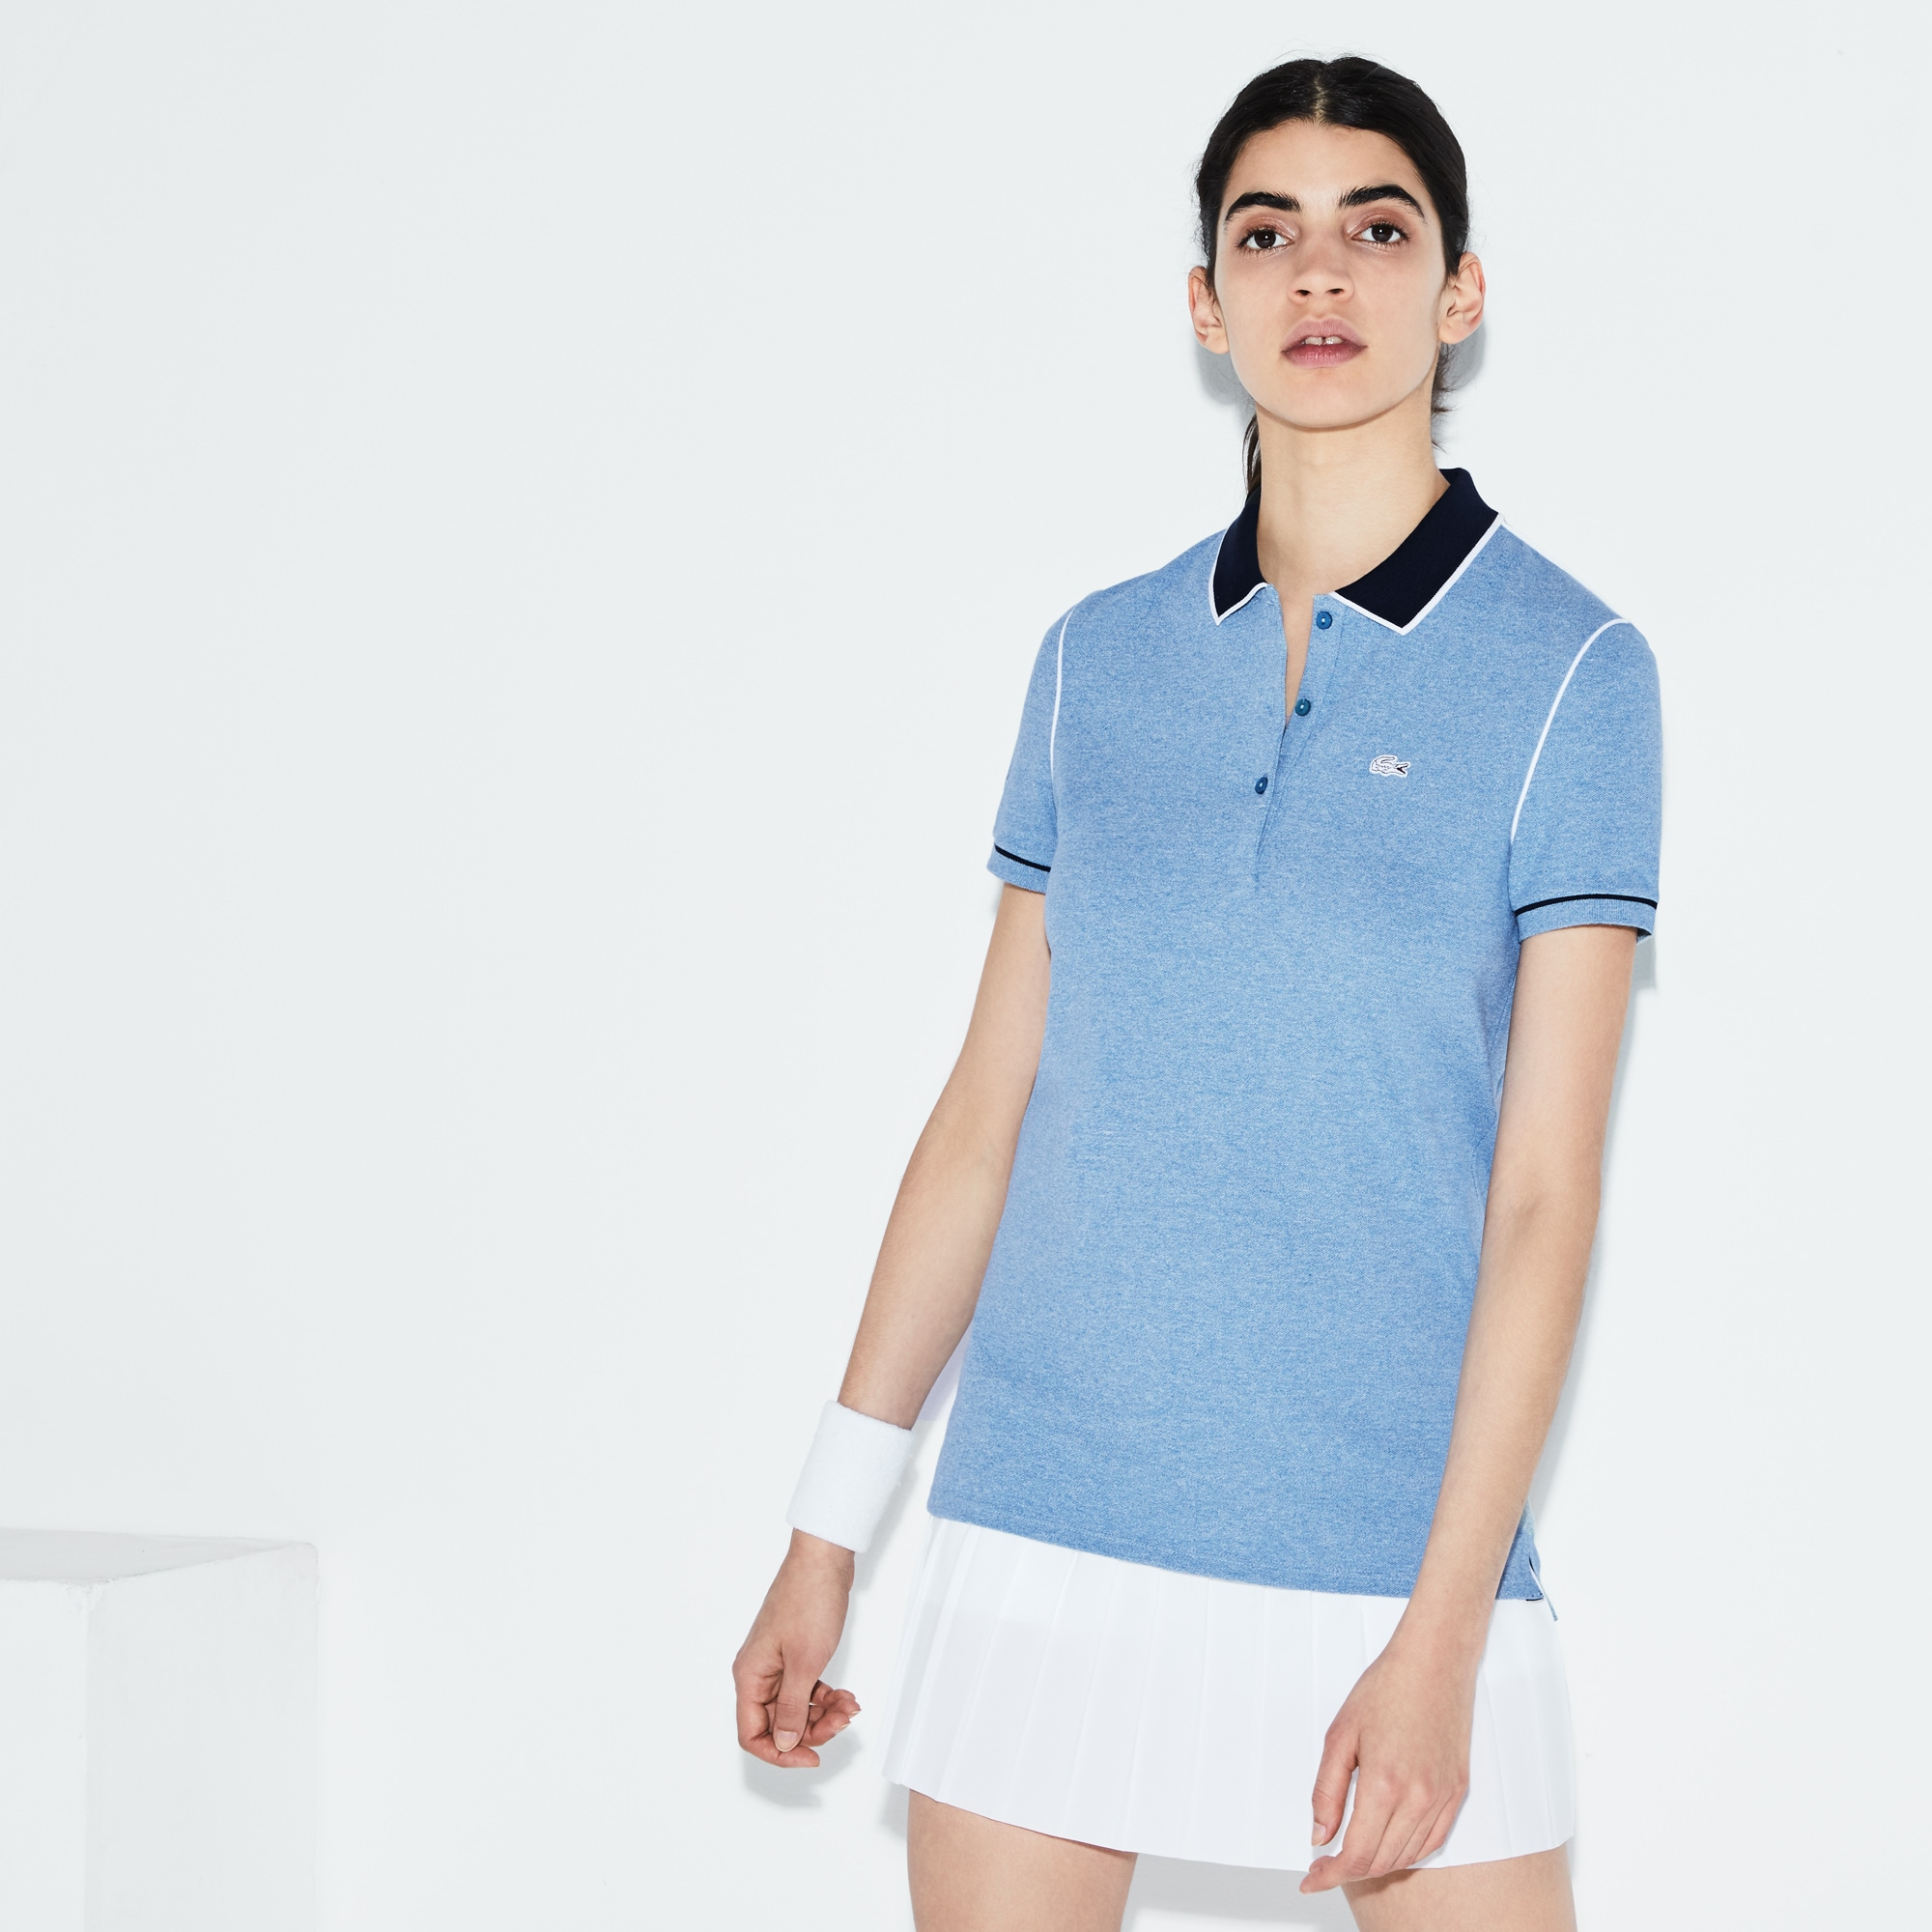 Women's Lacoste SPORT Roland Garros Edition Stretch Mini Piqué Polo Shirt